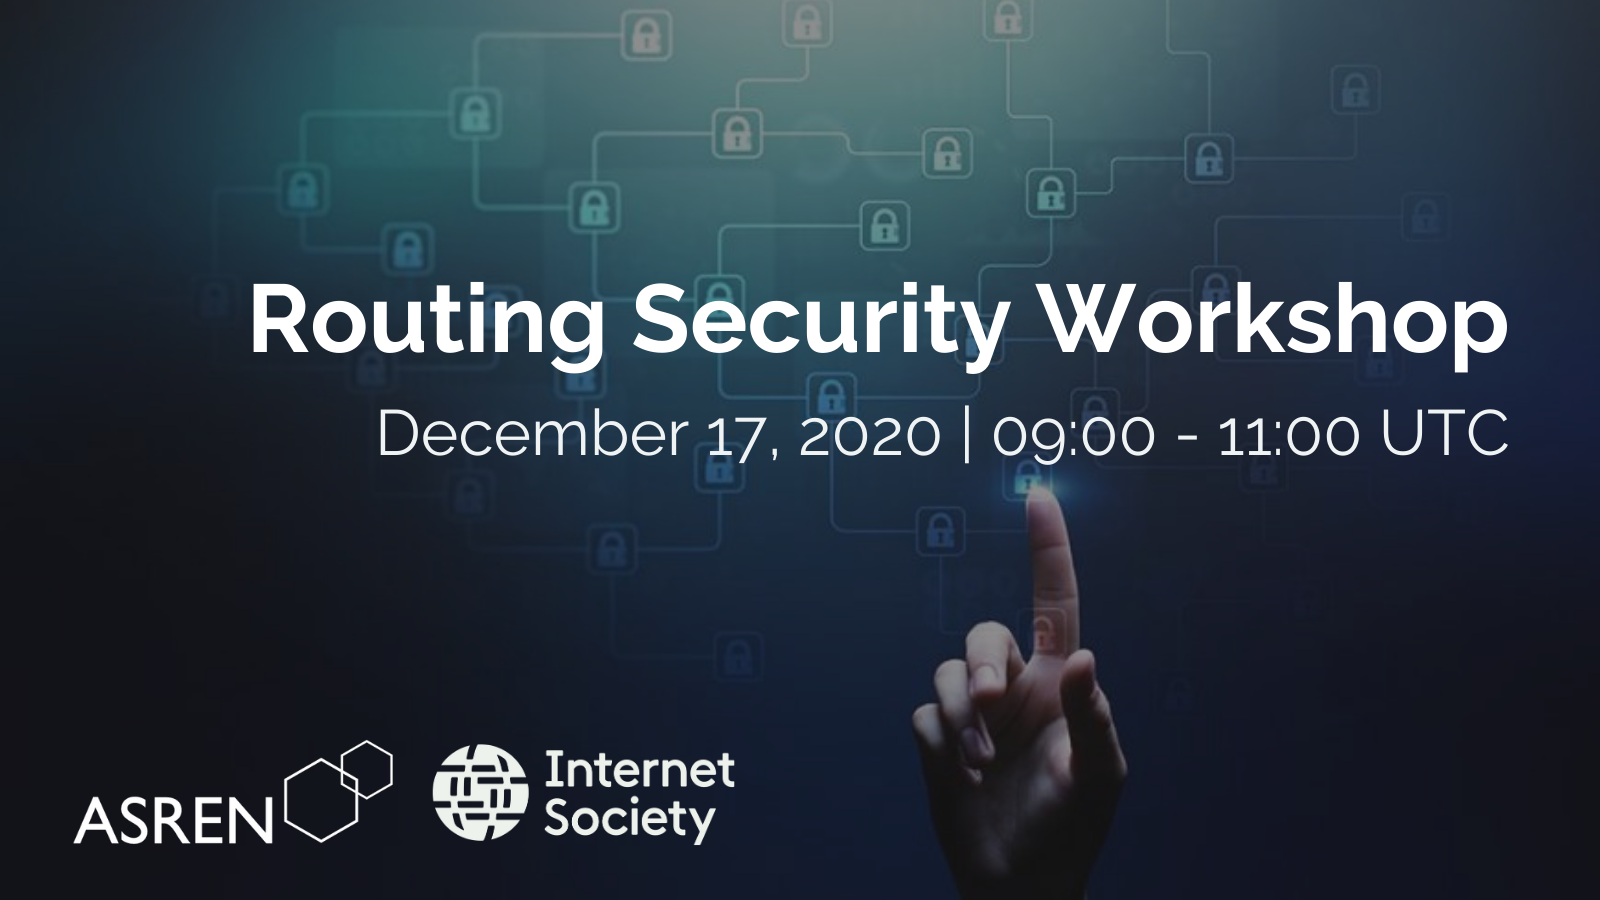 ORCID, Routing Security Workshop